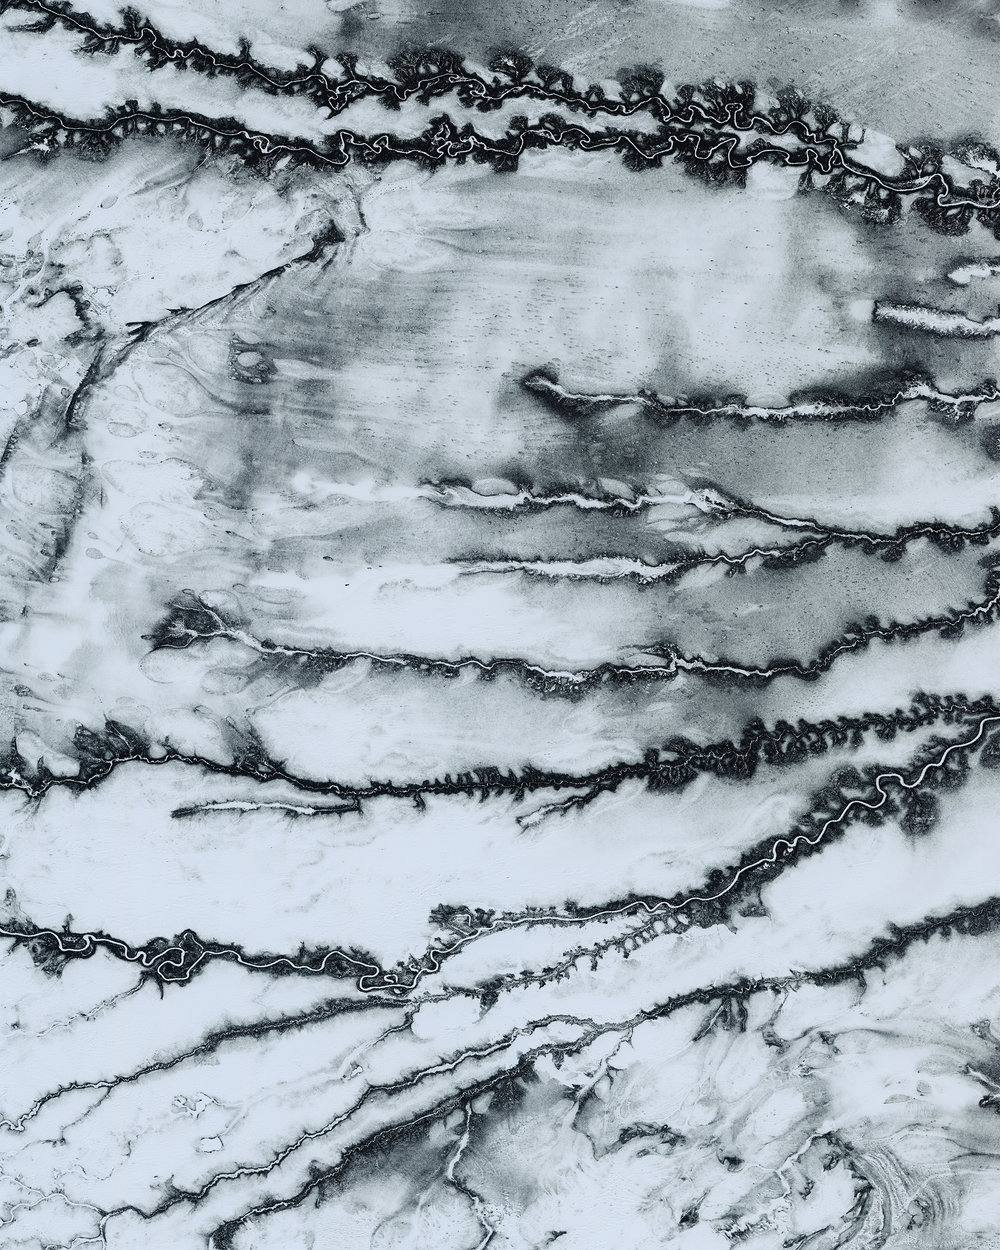 "Tributaries of the Moose River snake across snowy terrain near Moosonee, a town in northern Ontario, Canada. This area is part of the Hudson Plains Ecozone, a sparsely populated subarctic region extending from the western coast of Quebec to the coast of Manitoba. The ecozone contains the largest continuous wetland in the world, including the Moose River's 41,900-square-mile (108,500 sq. km) drainage basin.  51°04'26.3""N, 81°28'28.6""W  Source imagery: DigitalGlobe"